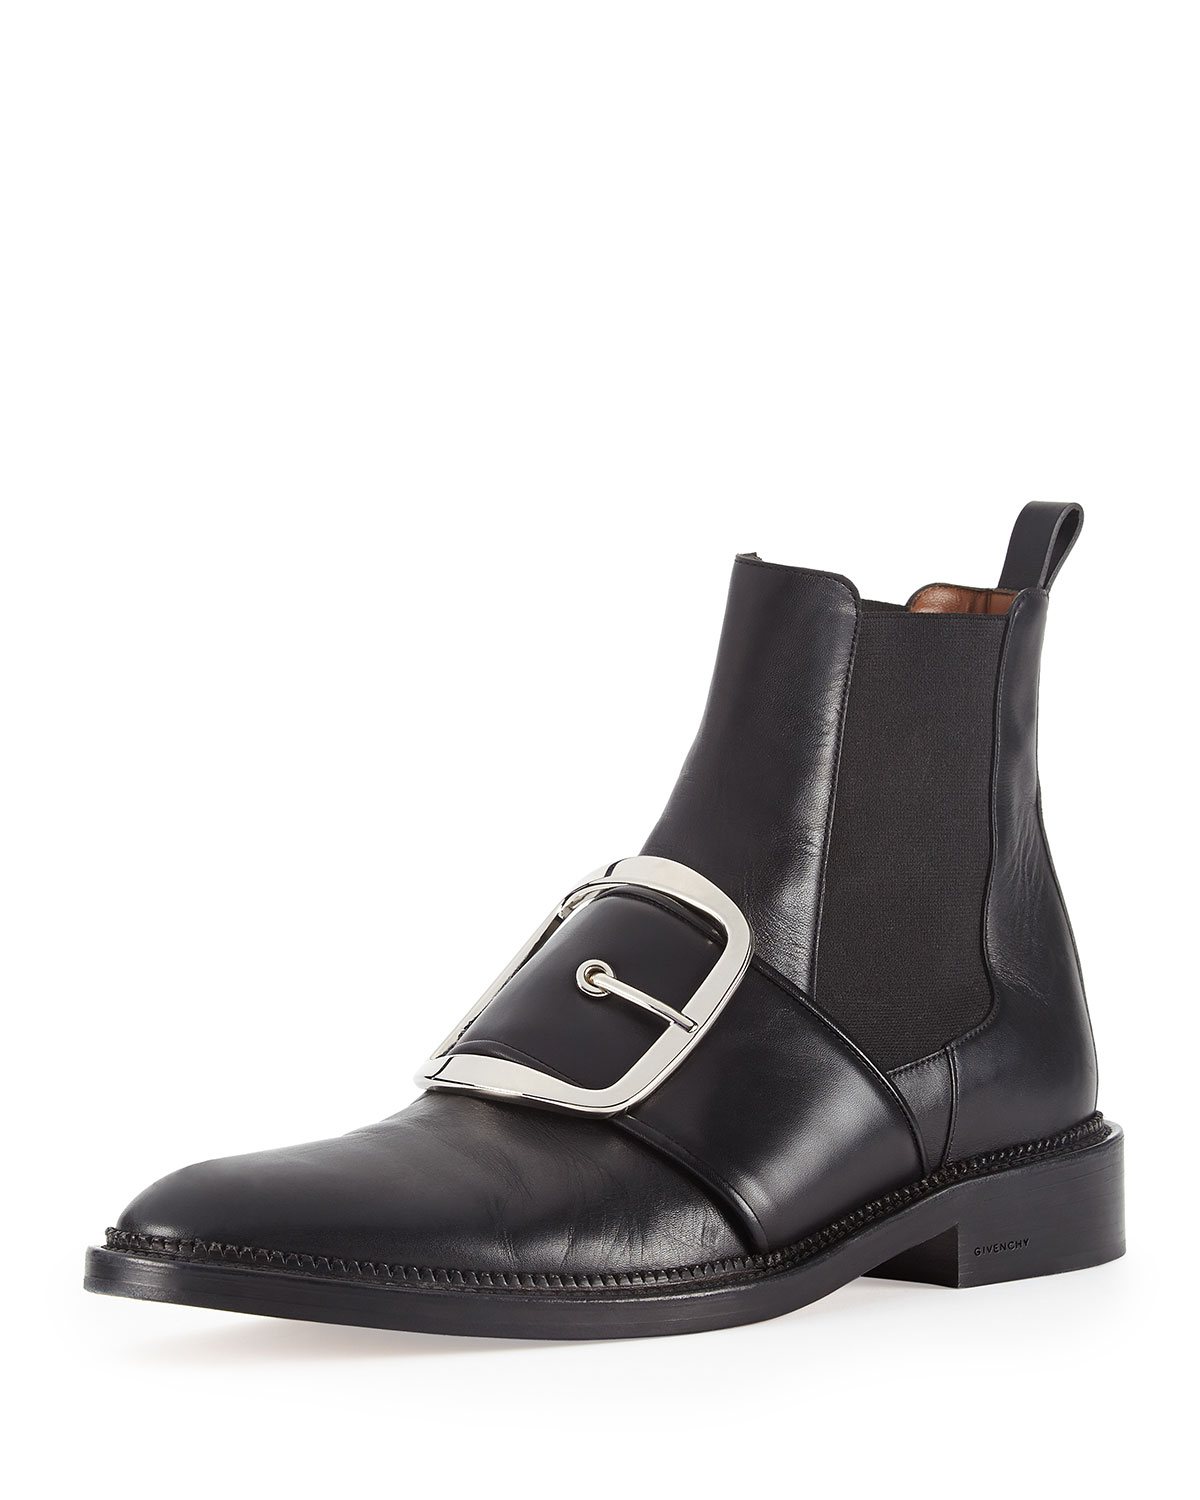 Givenchy Buckle-Strap Leather Ankle Boot in Black | Lyst